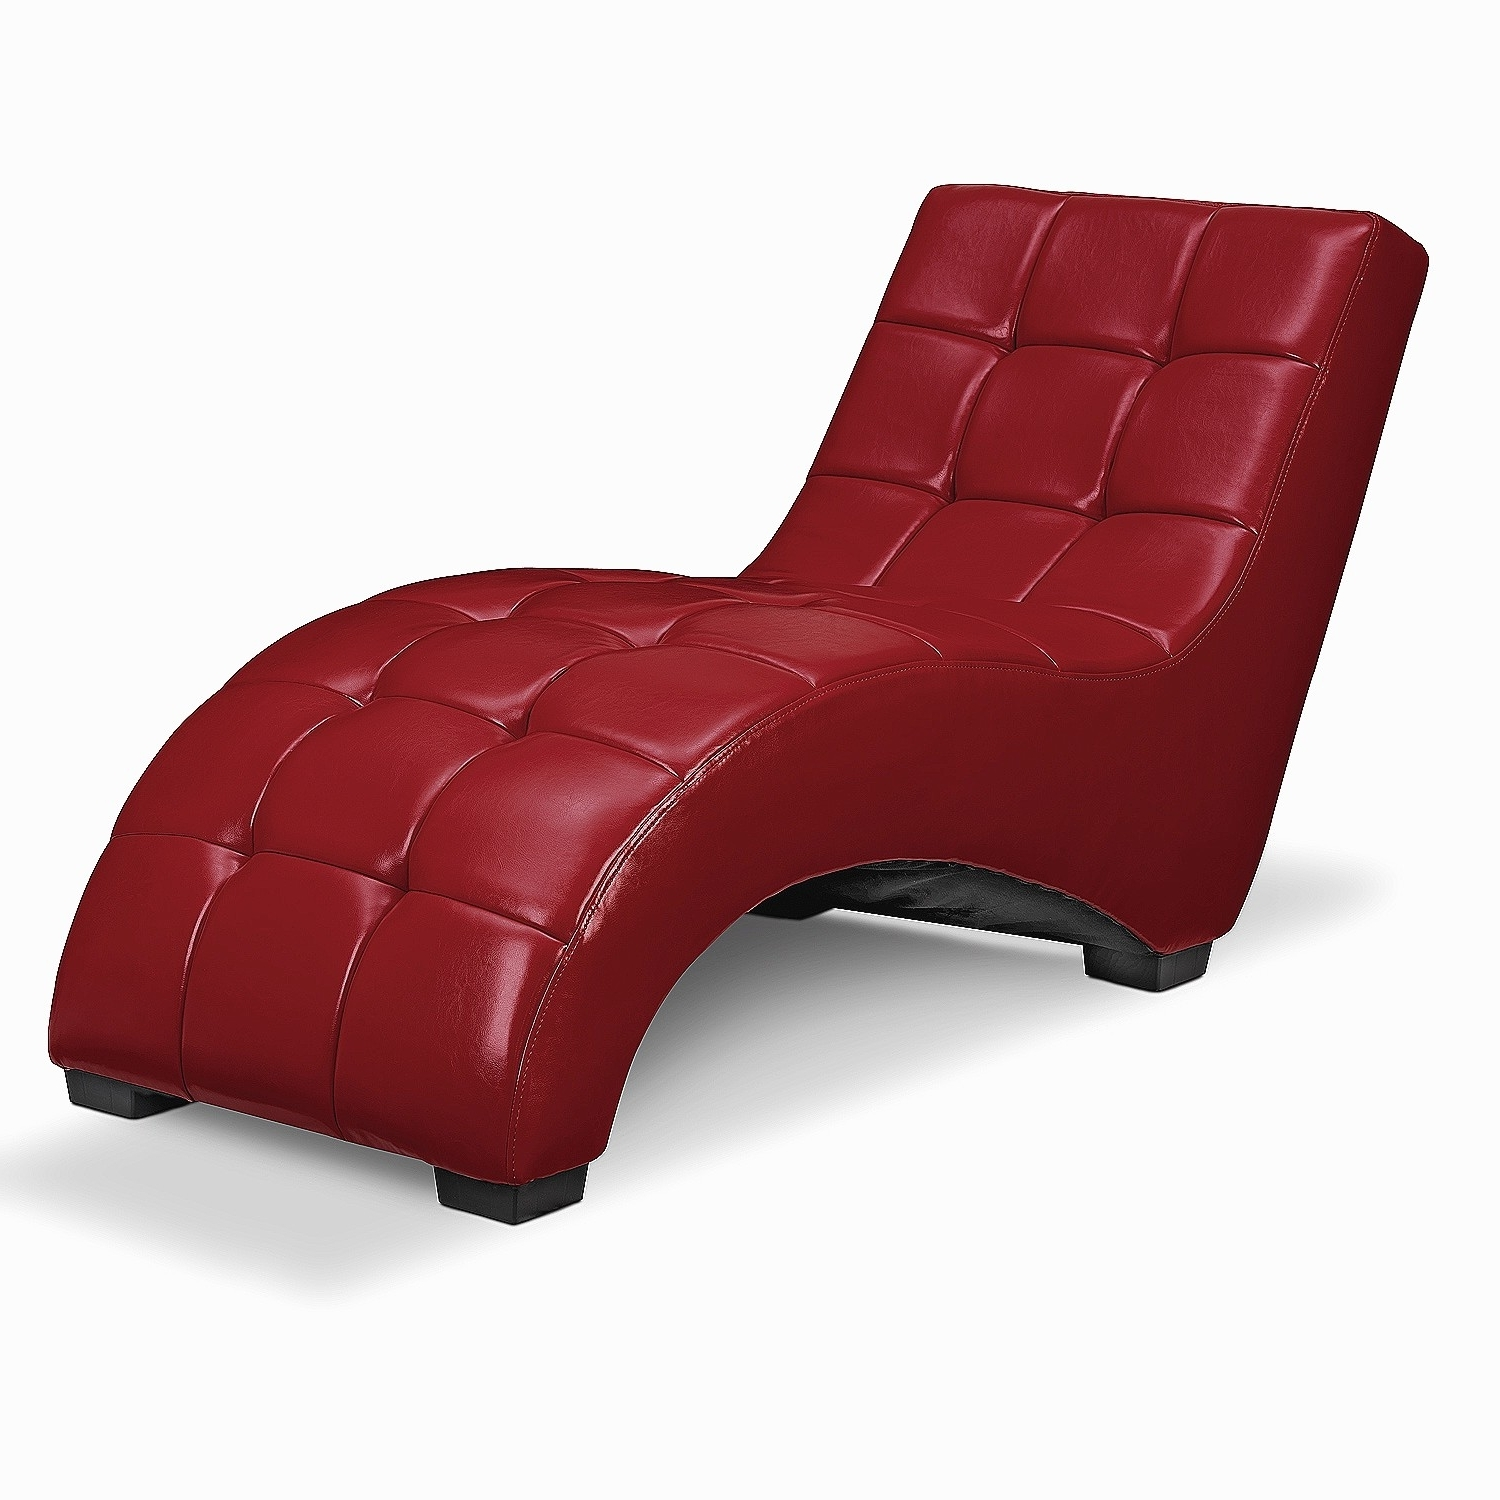 Leather Chaise Lounge Chairs Within Preferred Picture 34 Of 34 – Leather Chaise Lounge Chair Beautiful (View 9 of 15)